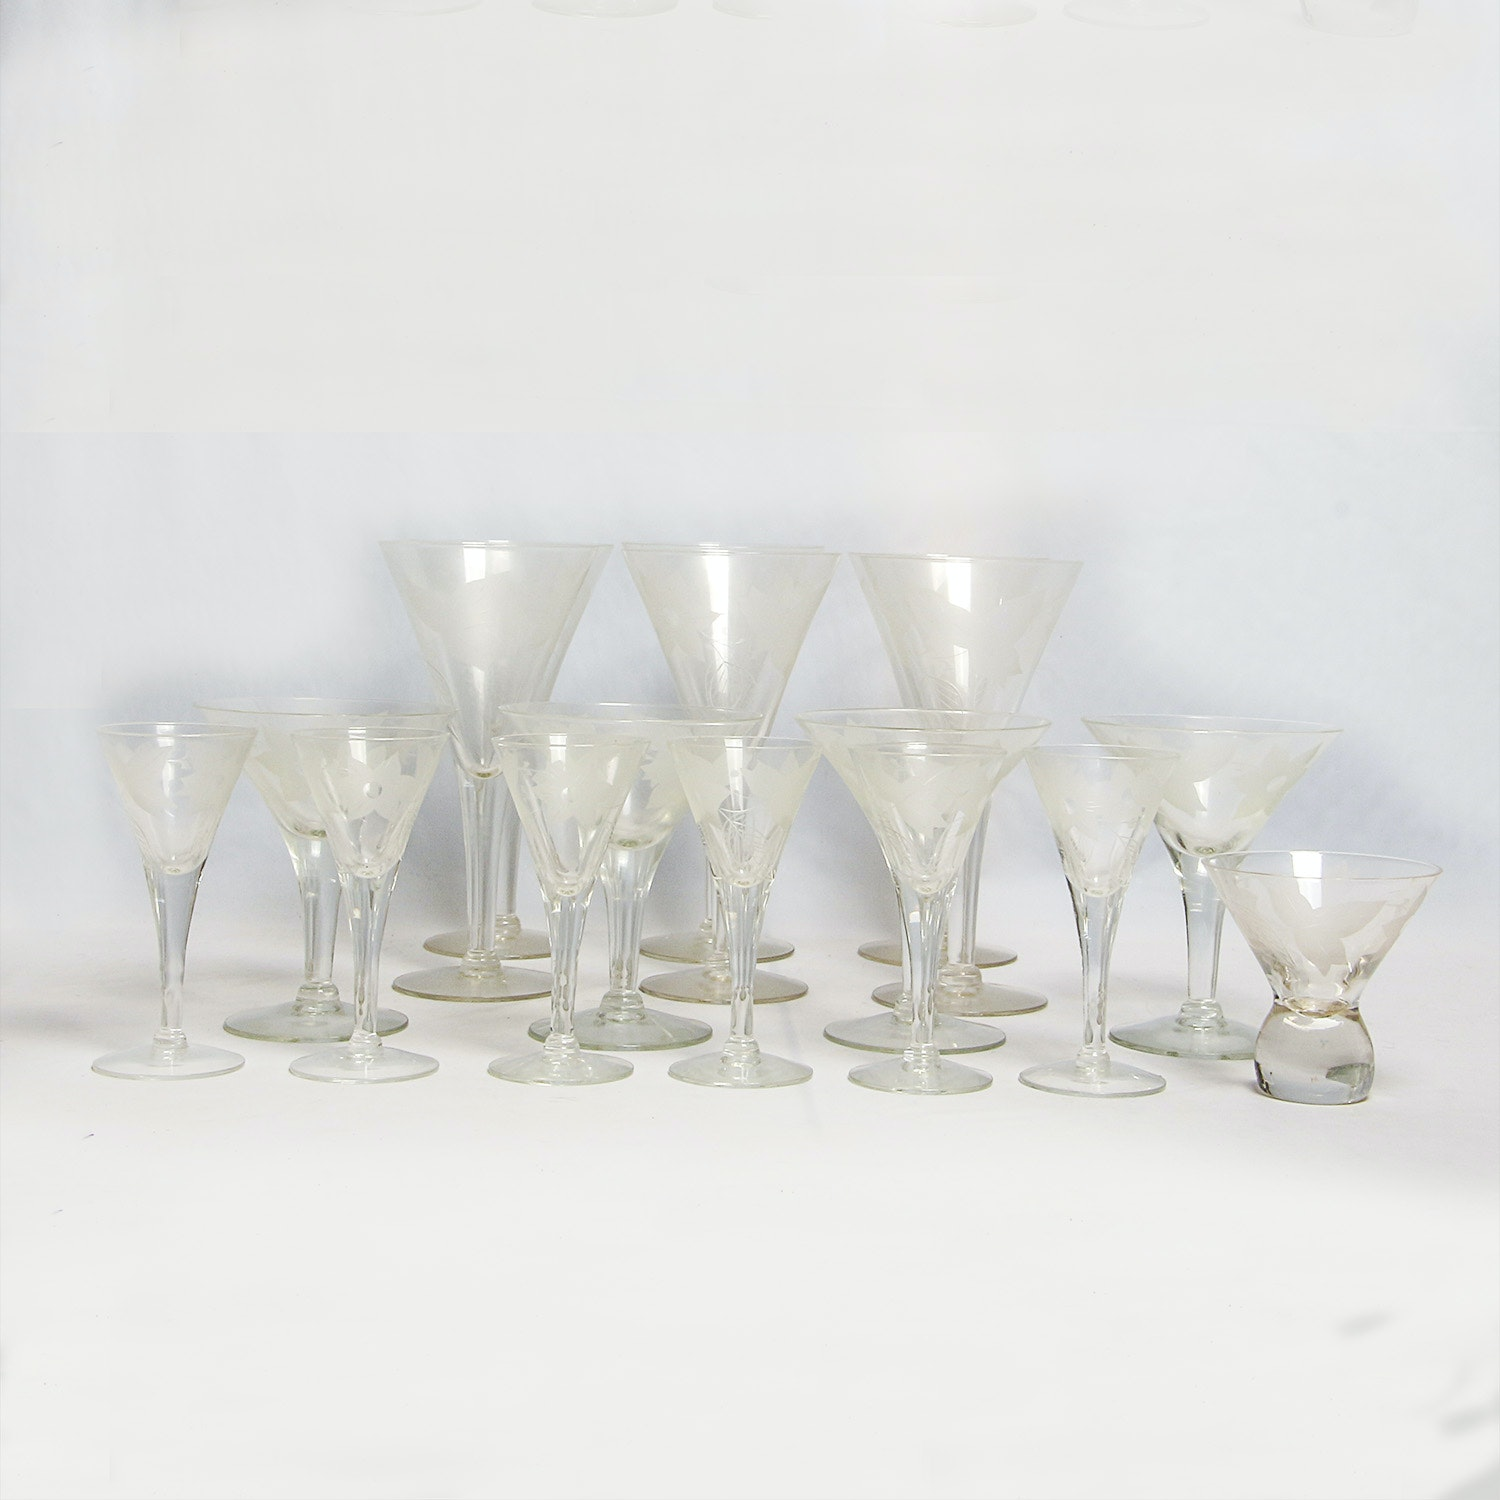 Collection of Vintage Etched Glass Stemware